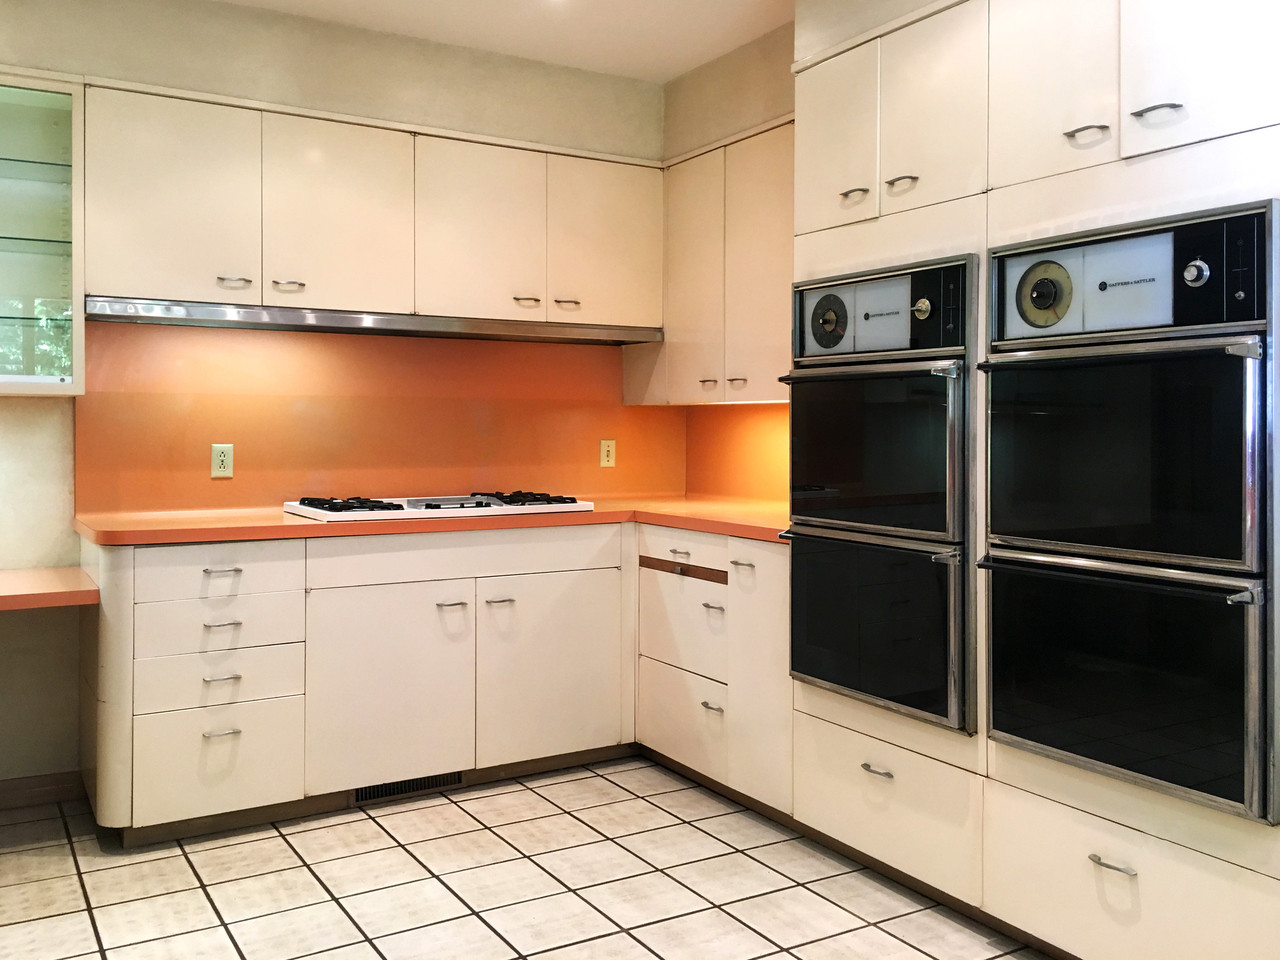 SOLD - Entire St. Charles 1960s MCM Kitchen and Pantry - Rehab ...  S Vintage Kitchen Appliances on 1960s kitchen containers, 1960s kitchen decor, 1960s kitchen chairs, 1960s kitchen furniture, 1960s kitchen books, 1960s bicycles, 1960s farmhouse kitchen, 1960s kitchen magazines, 1960s kitchen cabinets, 1960s bedroom, 1960s kitchen decorating ideas, 1960s kitchen dishes, 1960s kitchen faucet, 1960s kitchen range hood, 1960s kitchen before and after, 50s retro appliances, 1960s kitchen countertops, 1960s red kitchen, 1960s kitchen flooring, 1960s wood stoves,